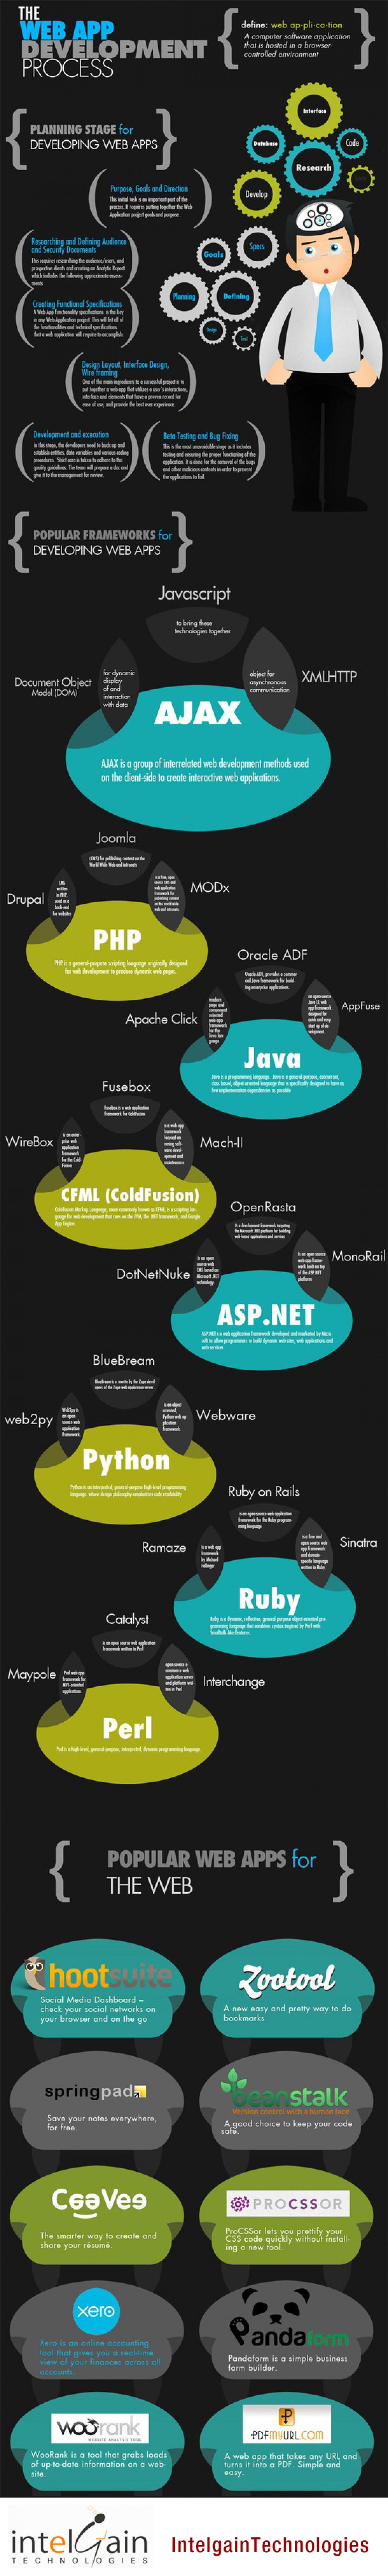 The Web Application Development Process Infographic